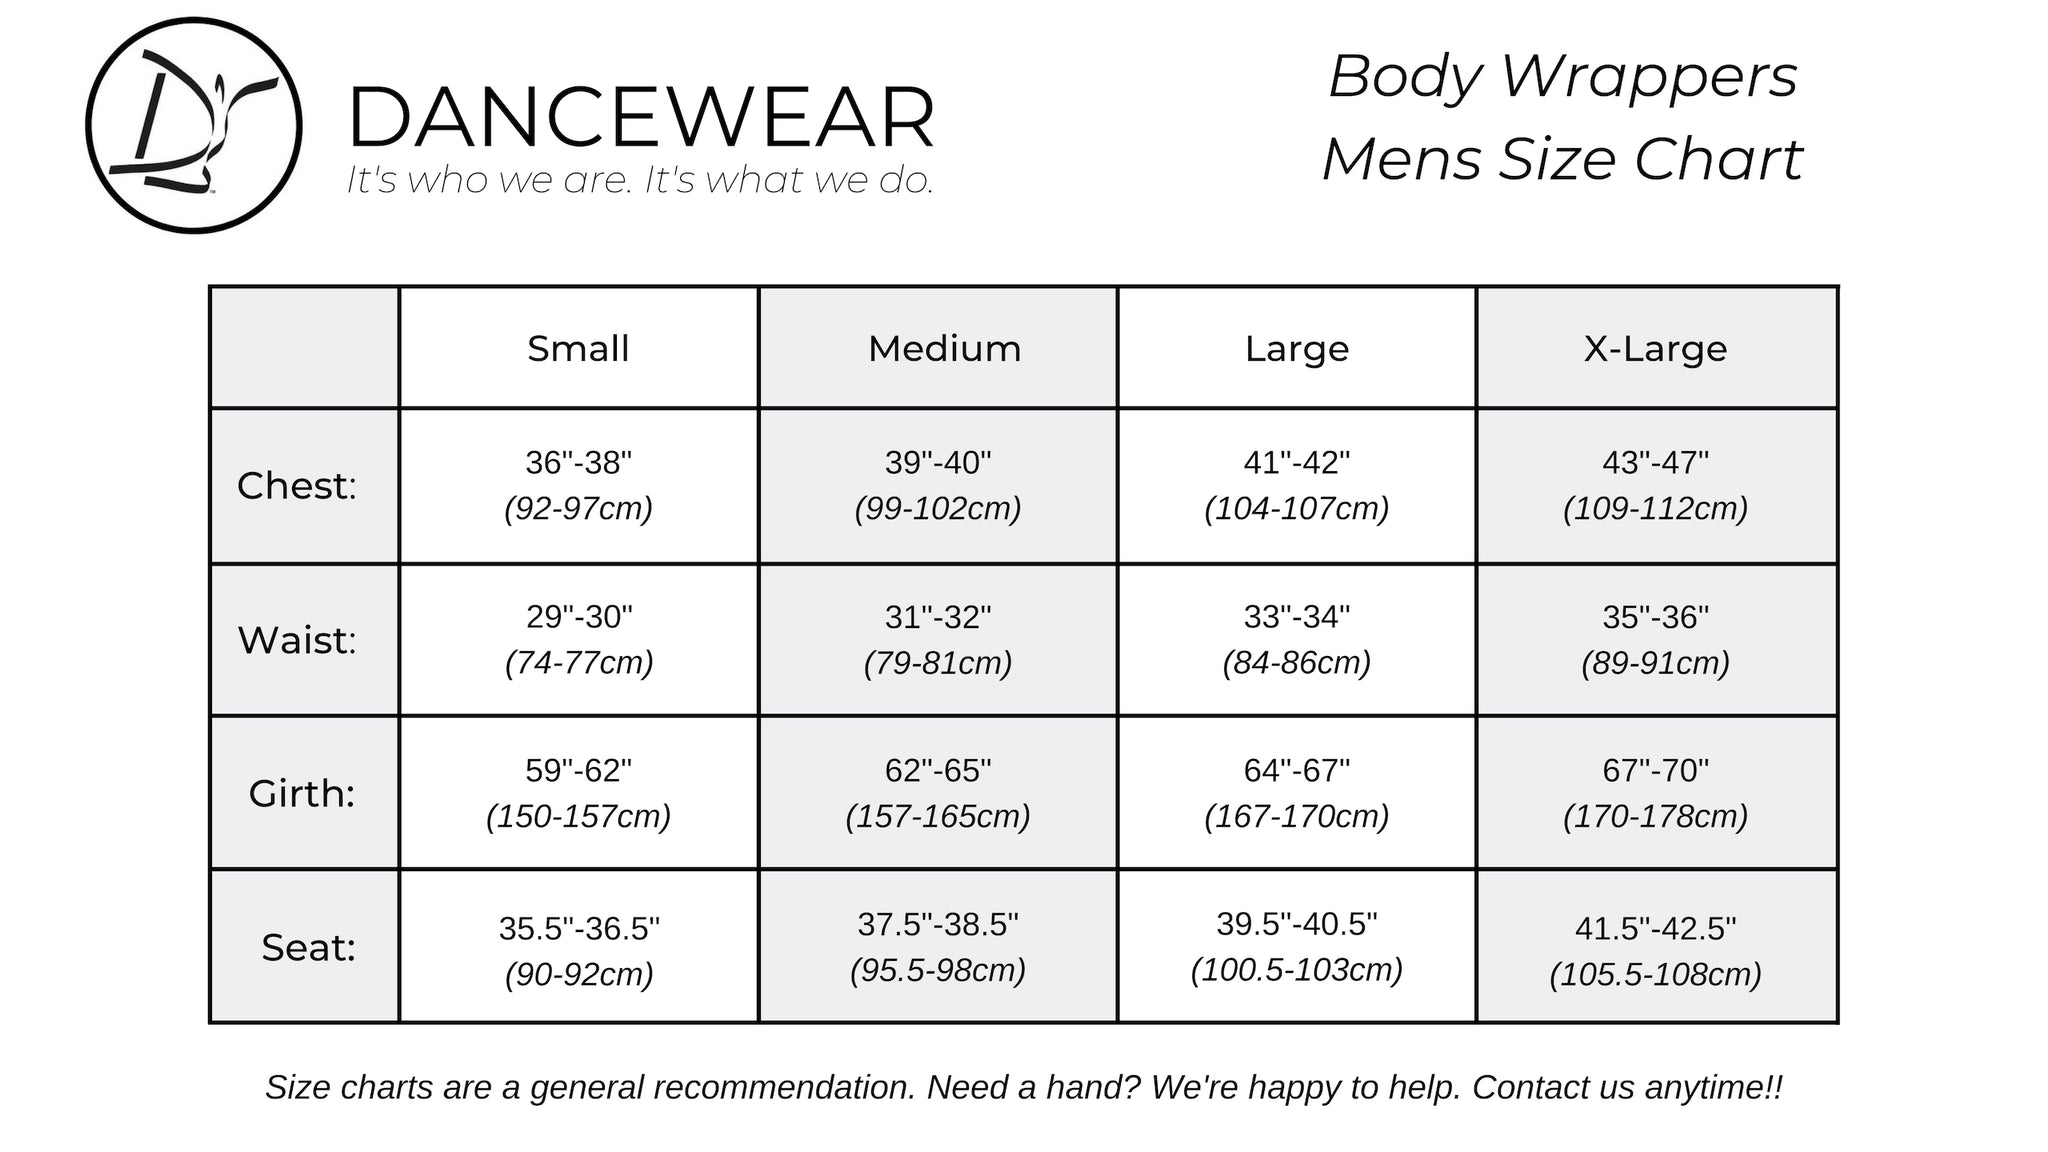 Body Wrappers Mens Size Chart